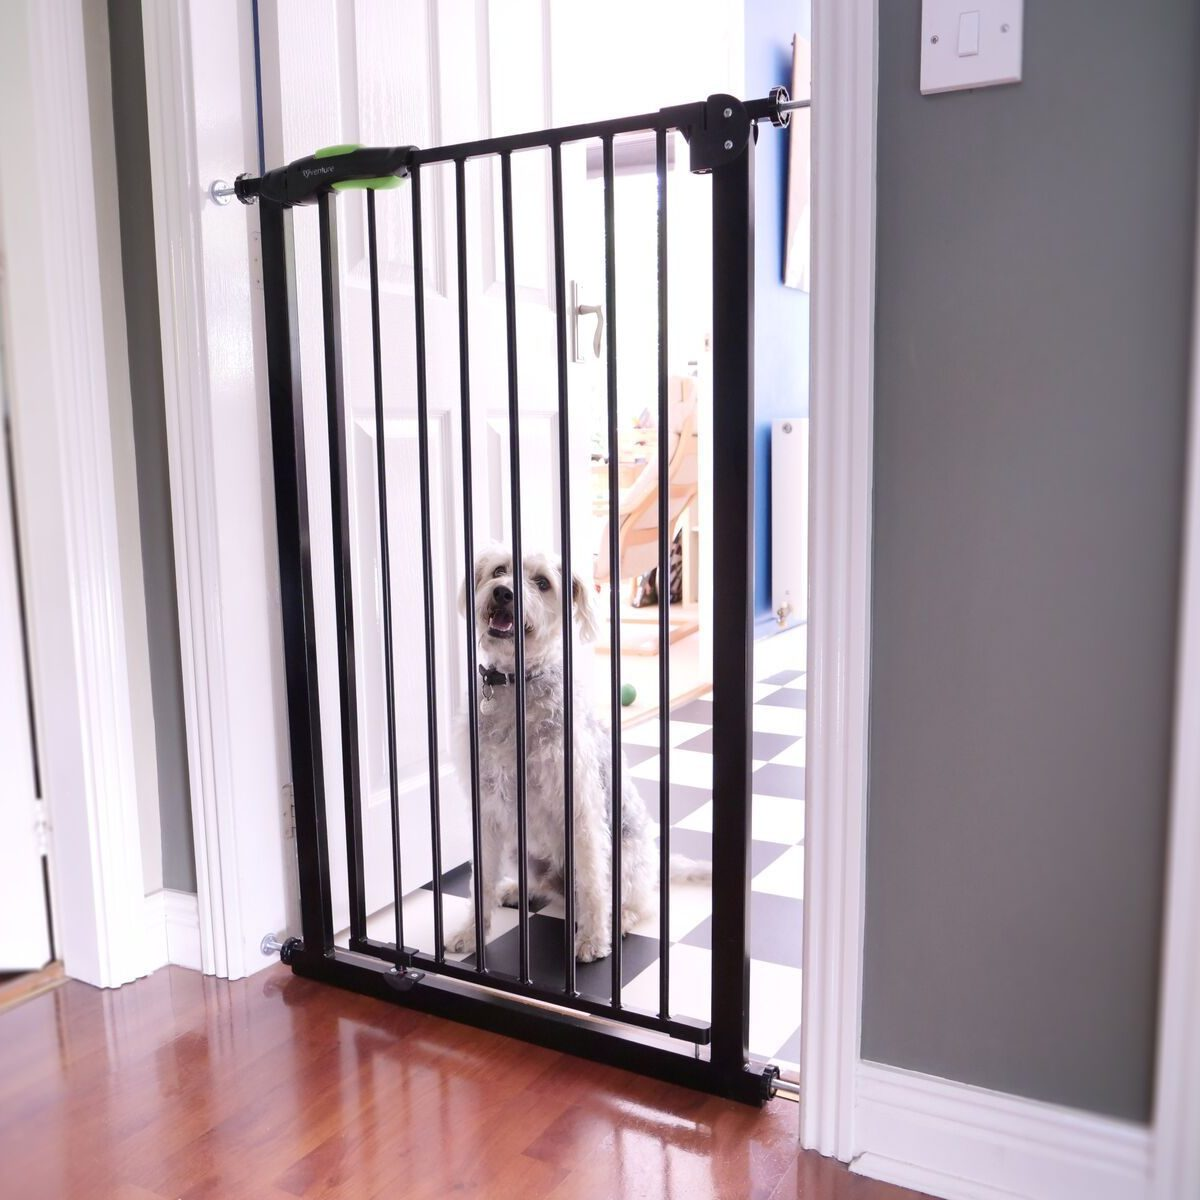 Venture Q Fix Extra tall pressure fit safety gate in black fitted